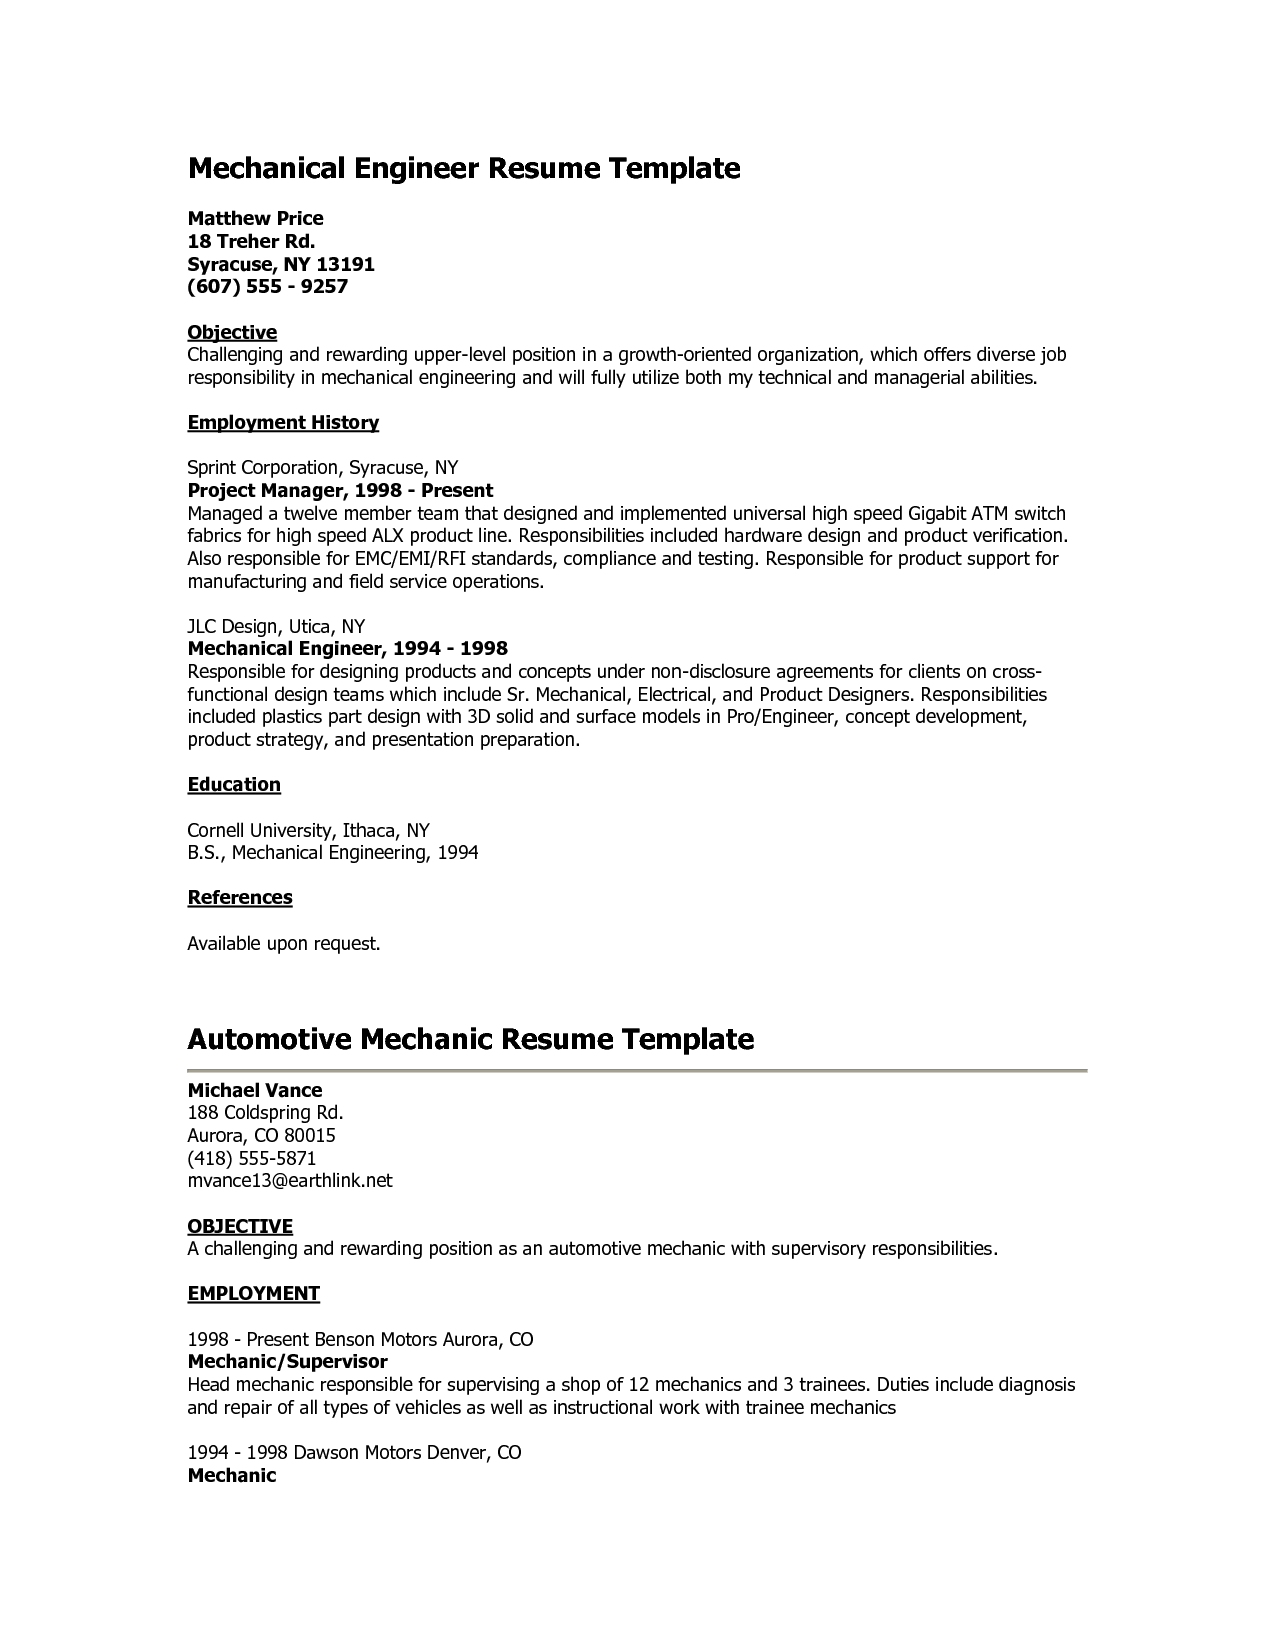 Entry Level Resume No Experience Bank Teller Resume With No Experience  Httpwww.jobresume.website .